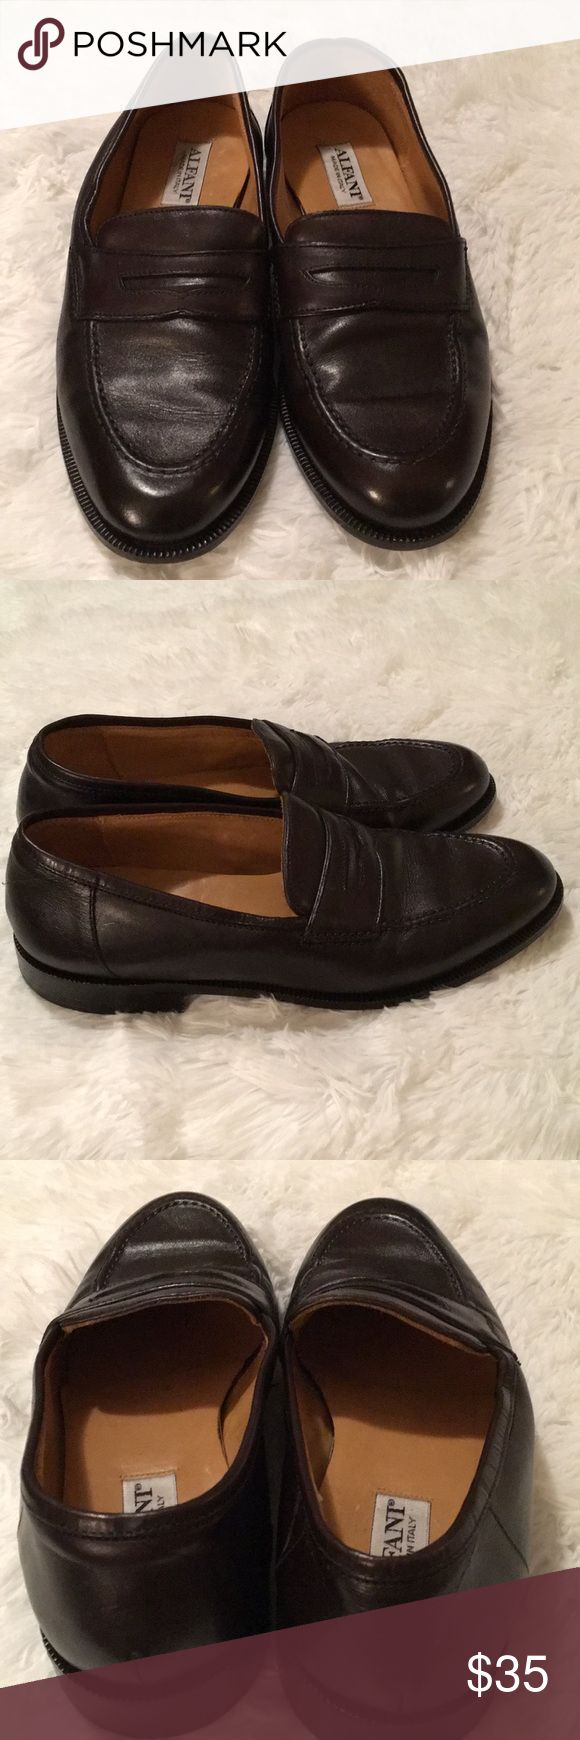 Alfani  Made in Italy Black Penny Loafer Slip-On Pair of Size 8 1/2 M Black All Leather Penny Loafer Slip- Ons by Alfani.  These were made in Italy.  Flexible Construction. Alfani Shoes Loafers & Slip-Ons